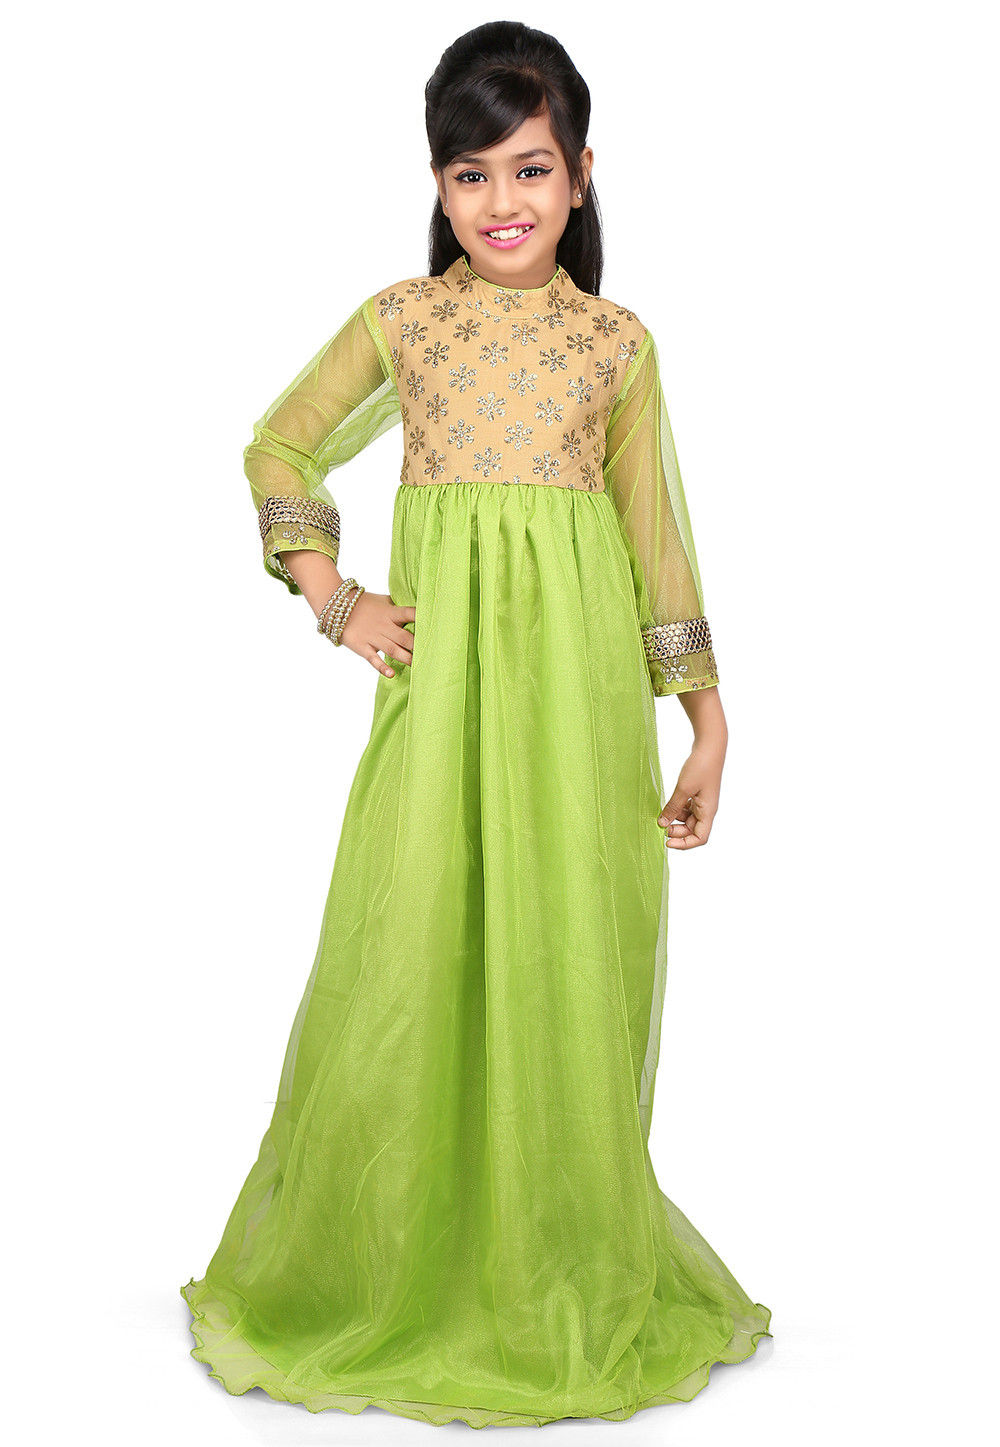 Embroidered Net and Dupion Silk Gown in Neon Green and Beige